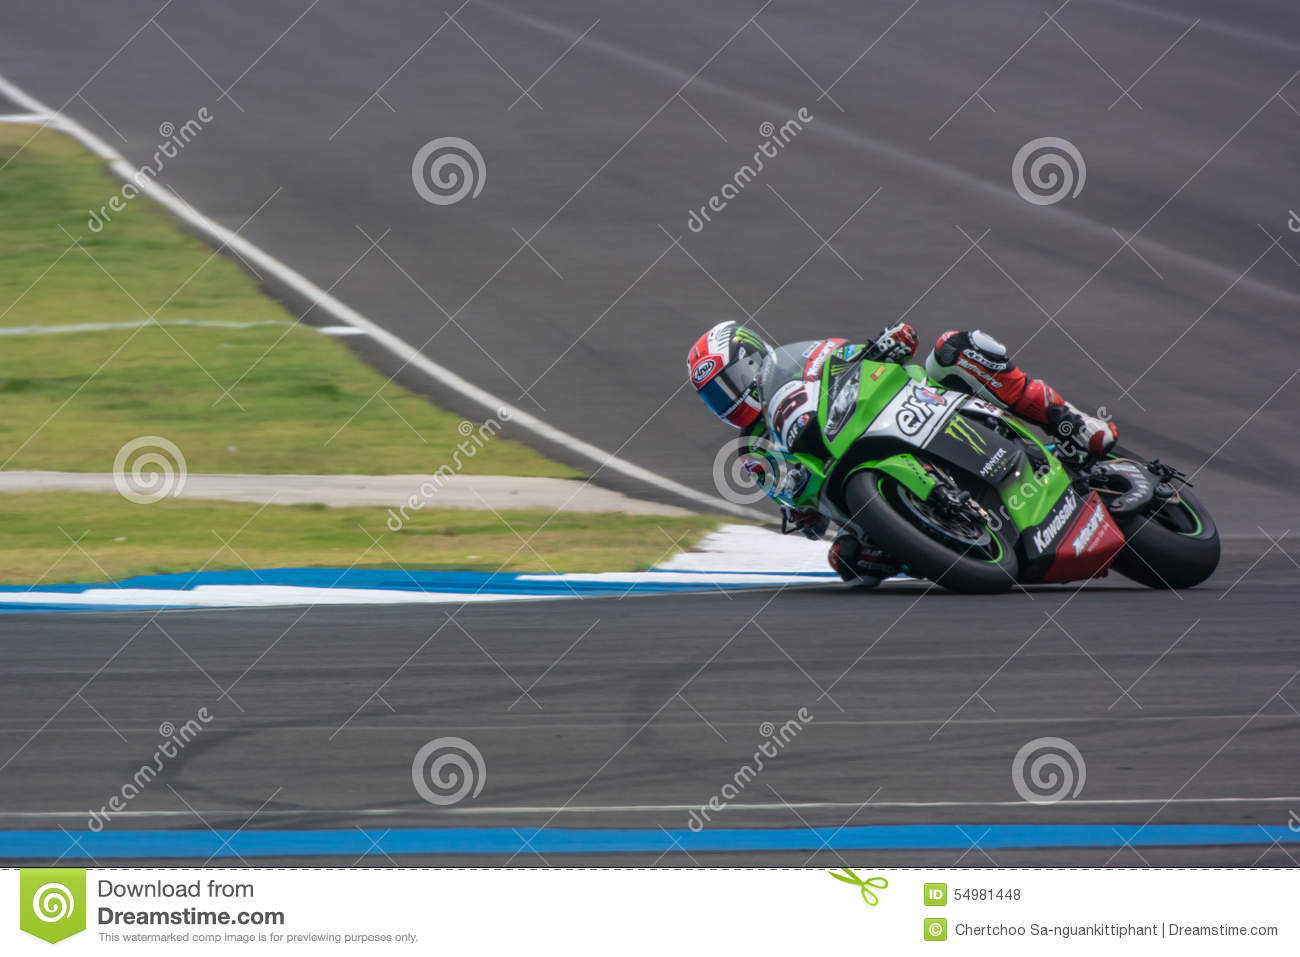 WSBK2015 - Round2 - Chang International Circuits, Buriram, Thailand